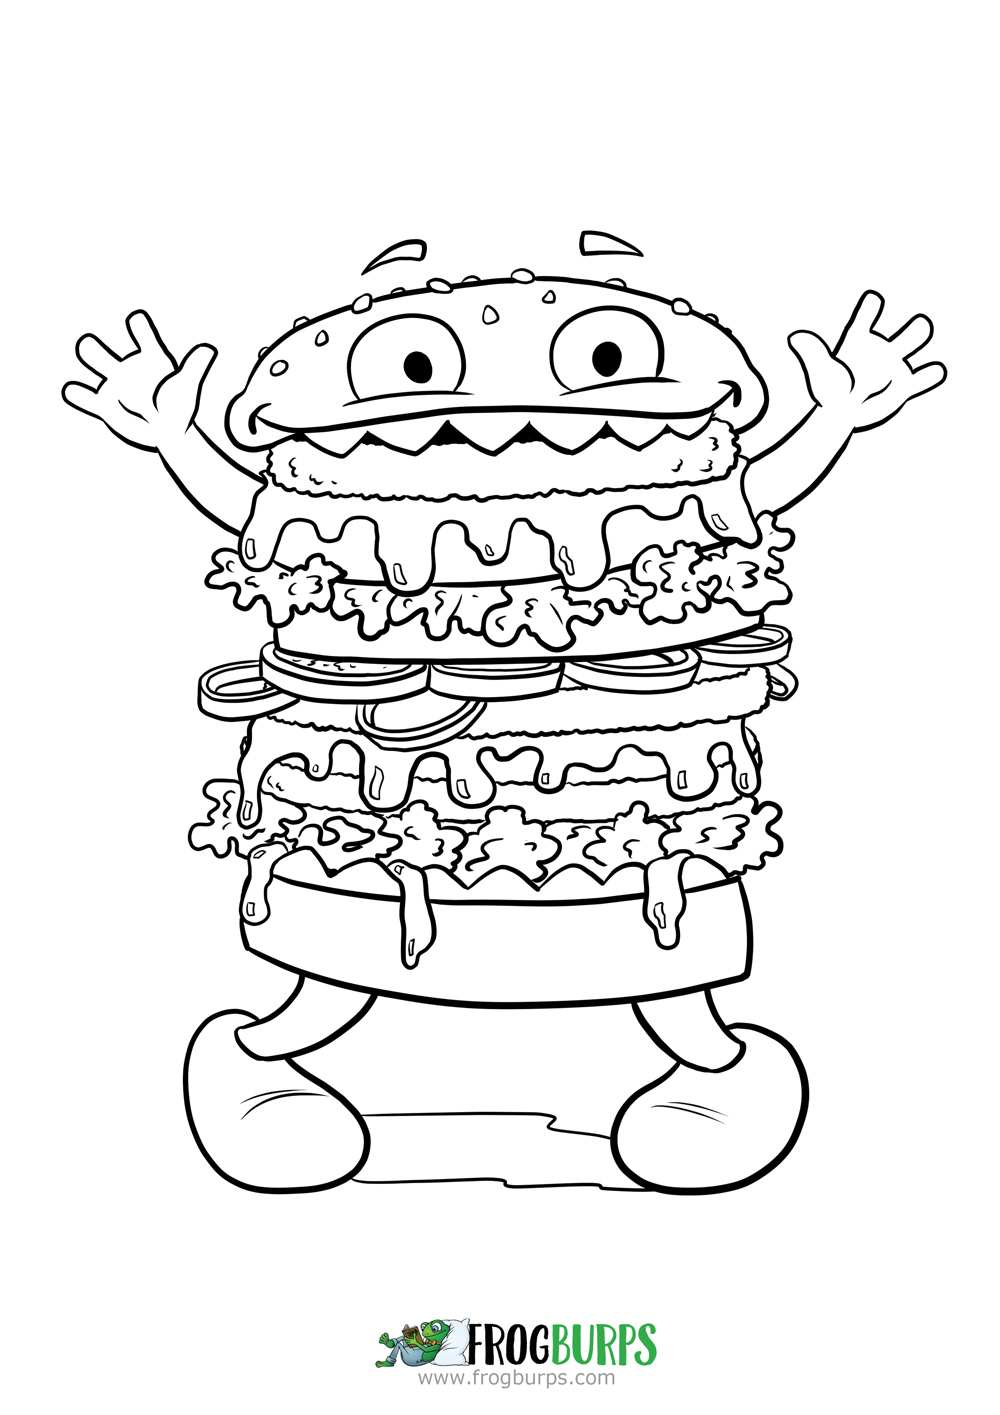 Silly Burger Monster | Coloring Page